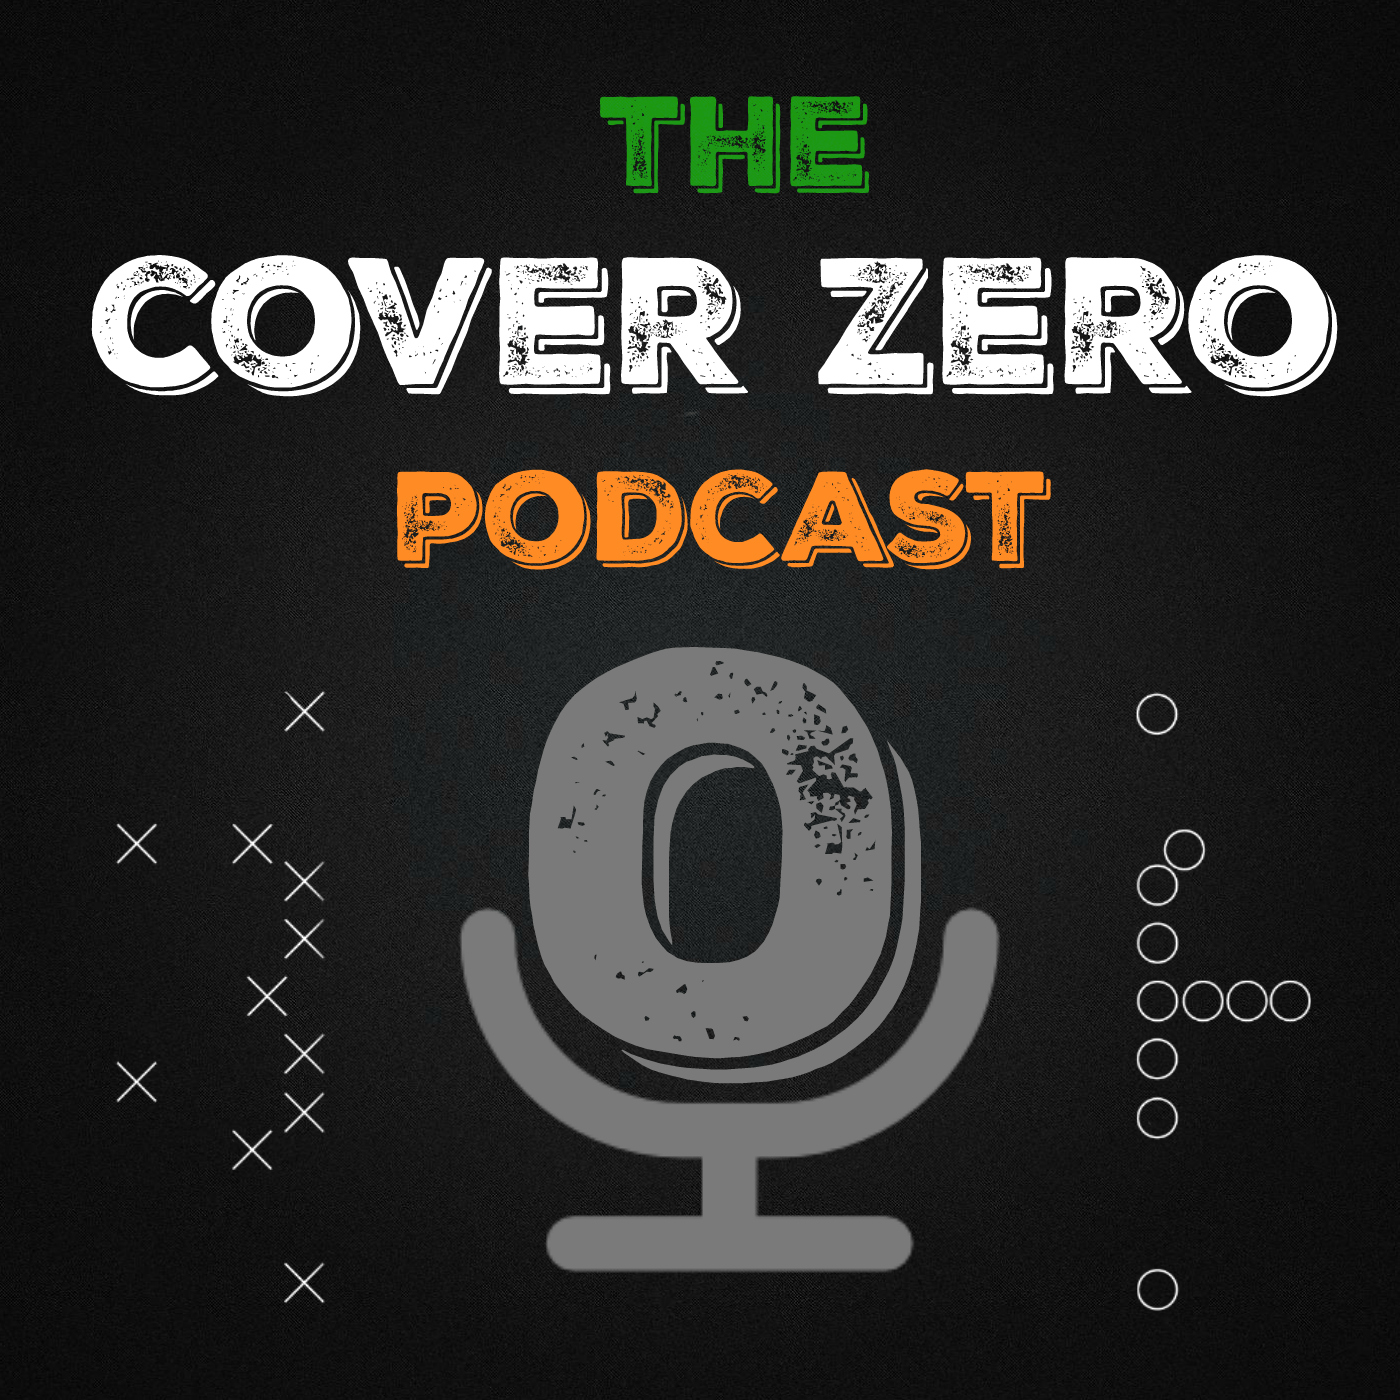 Cover Zero Podcast